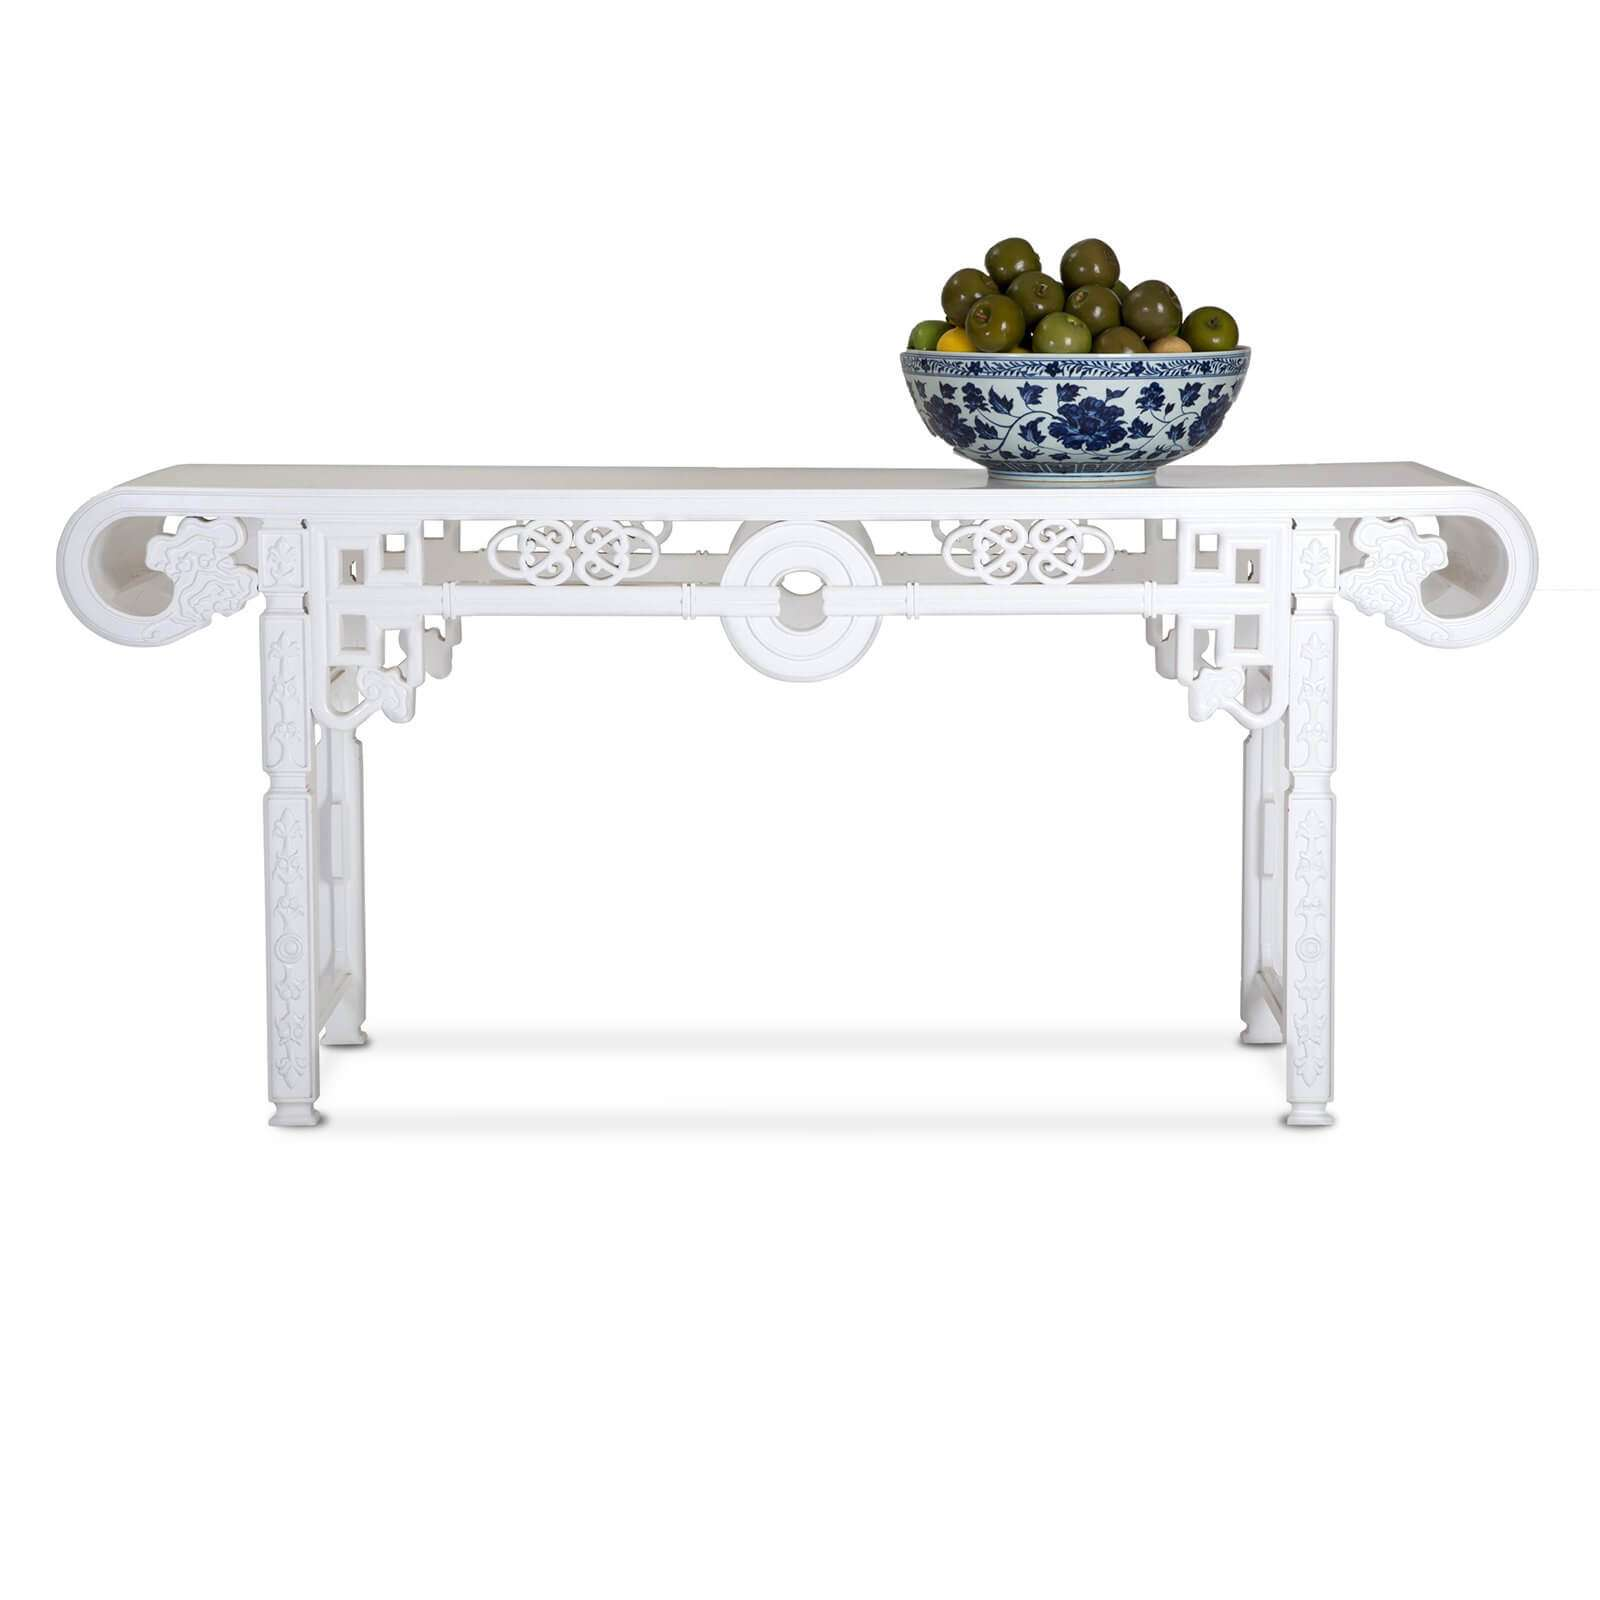 PARAGON CONSOLE - STUART MEMBERY HOME COLLECTION